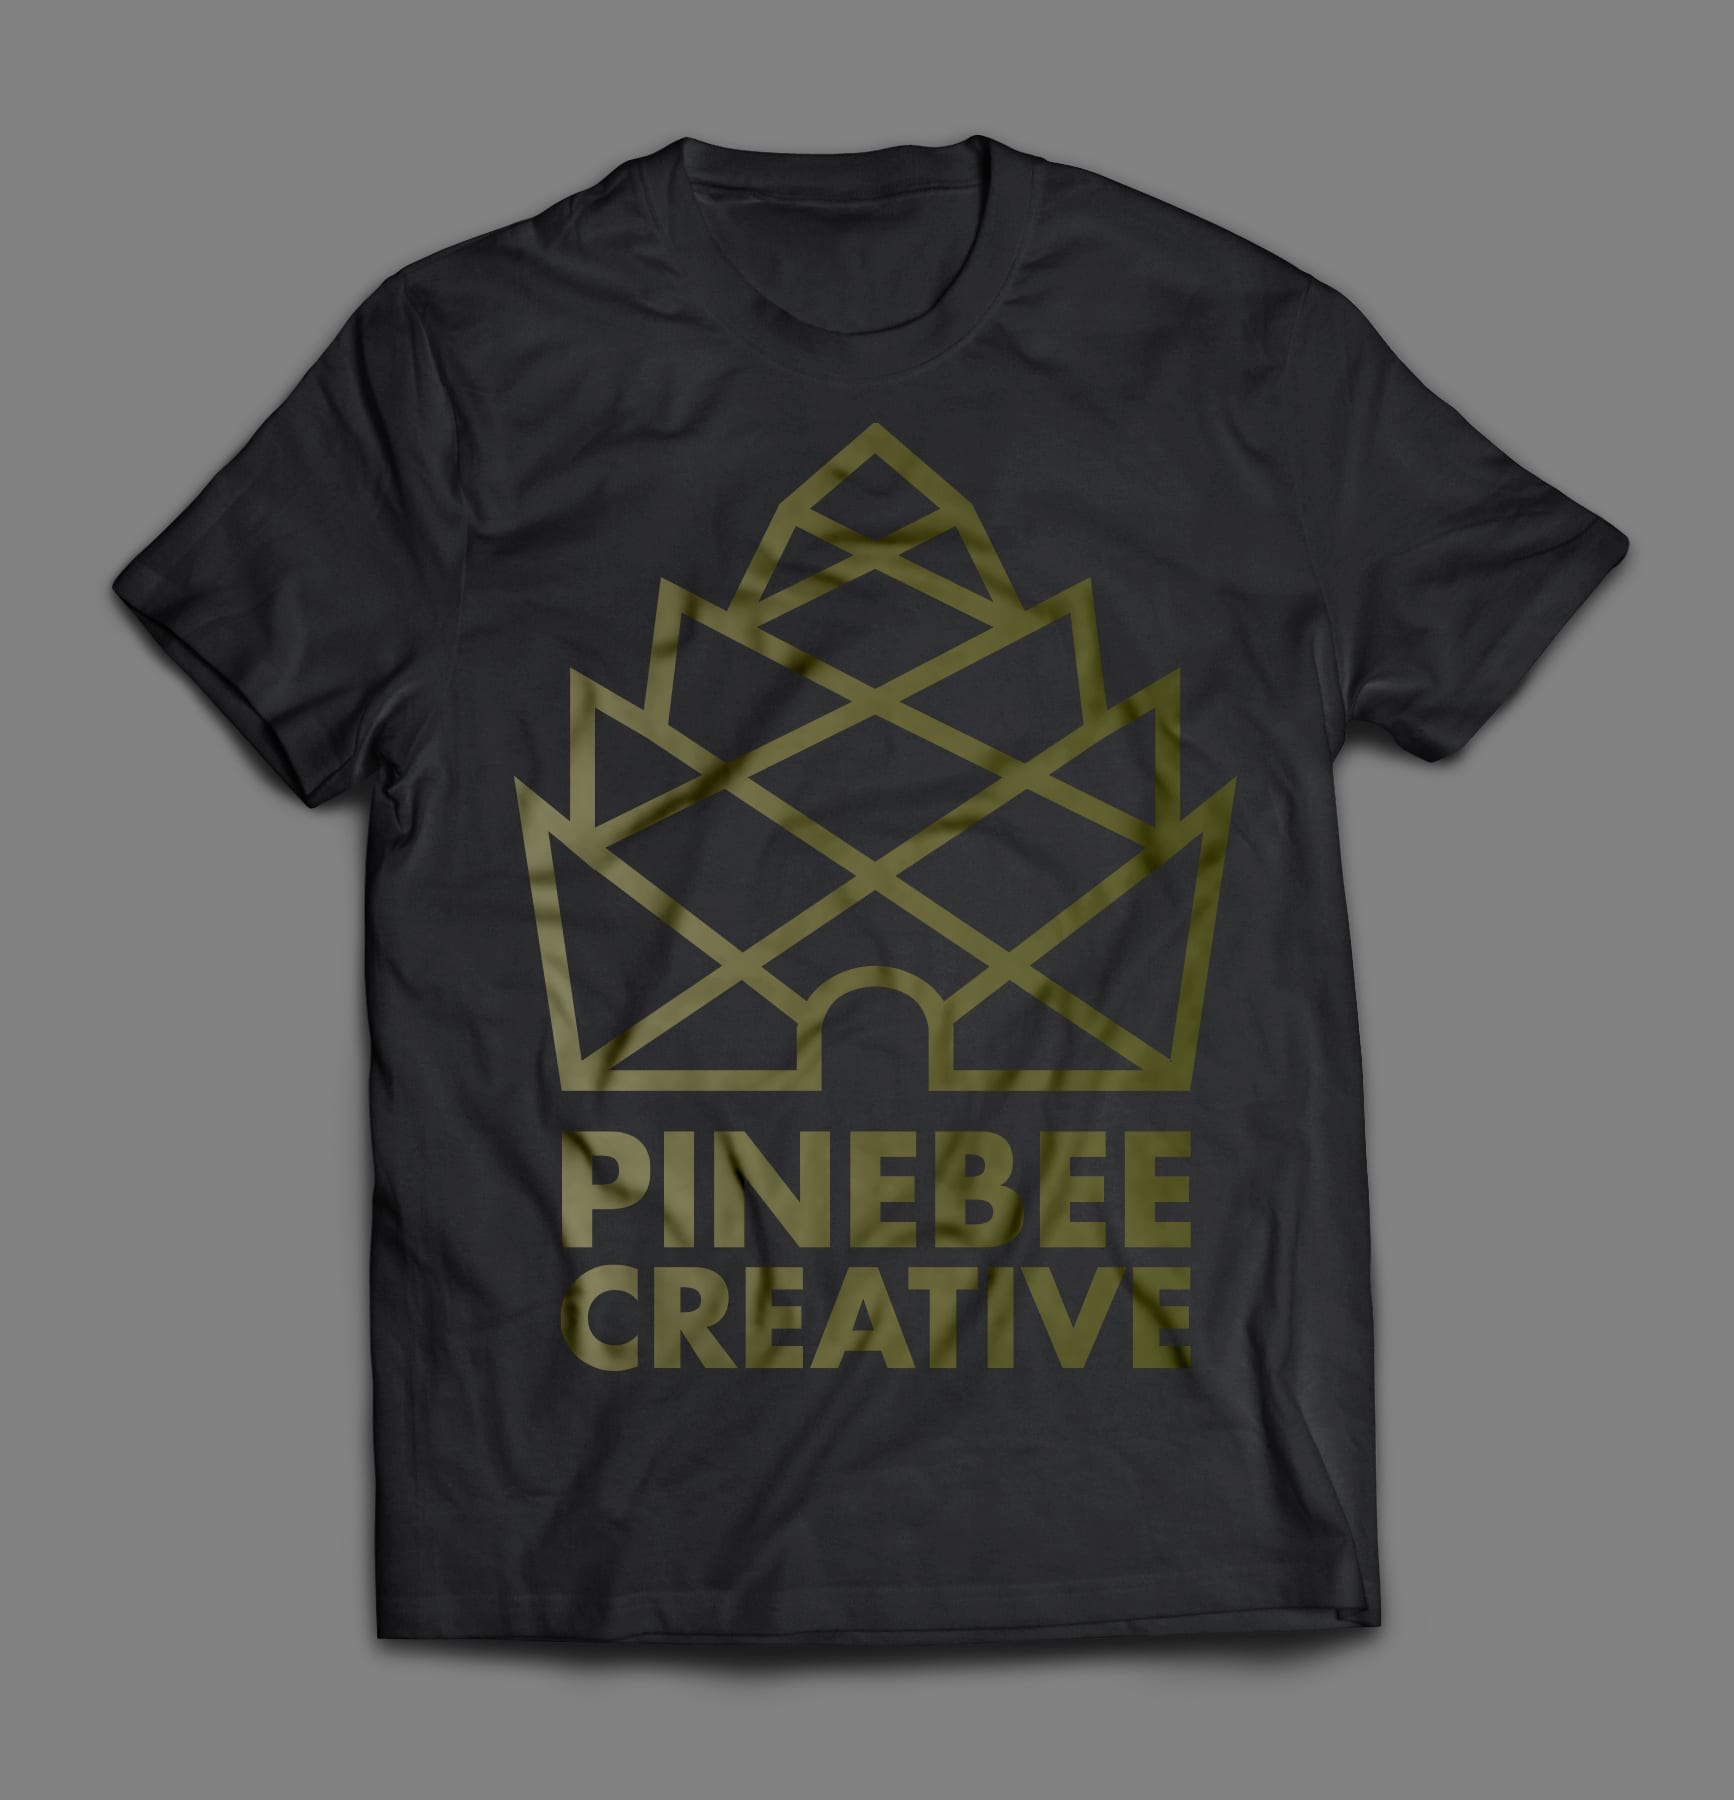 Promotional Shirt with Pinebee Creative Logo